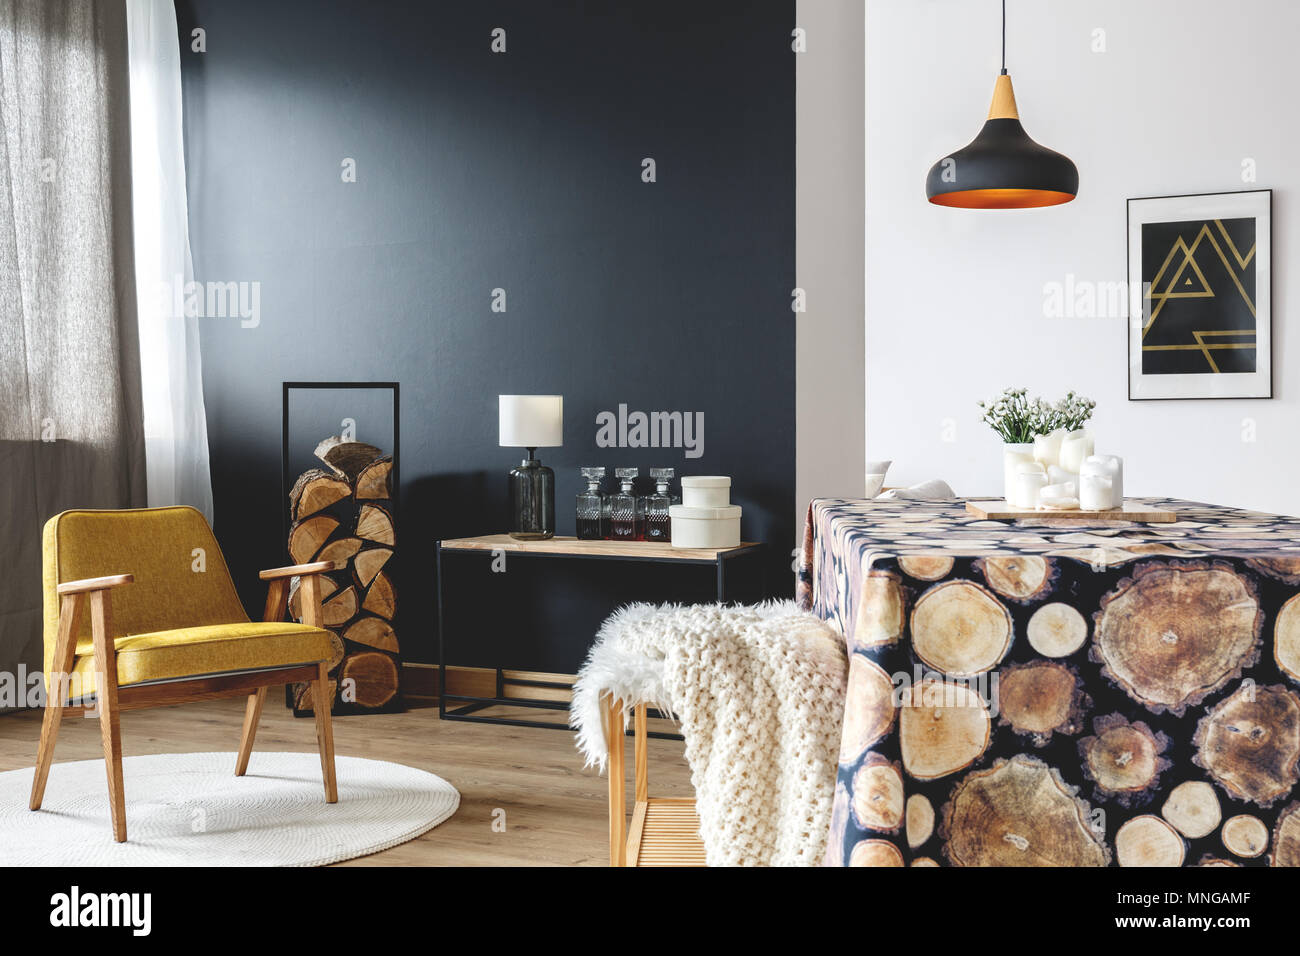 Yellow armchair, logs and cozy wood decor theme in natural apartment with dining space - Stock Image